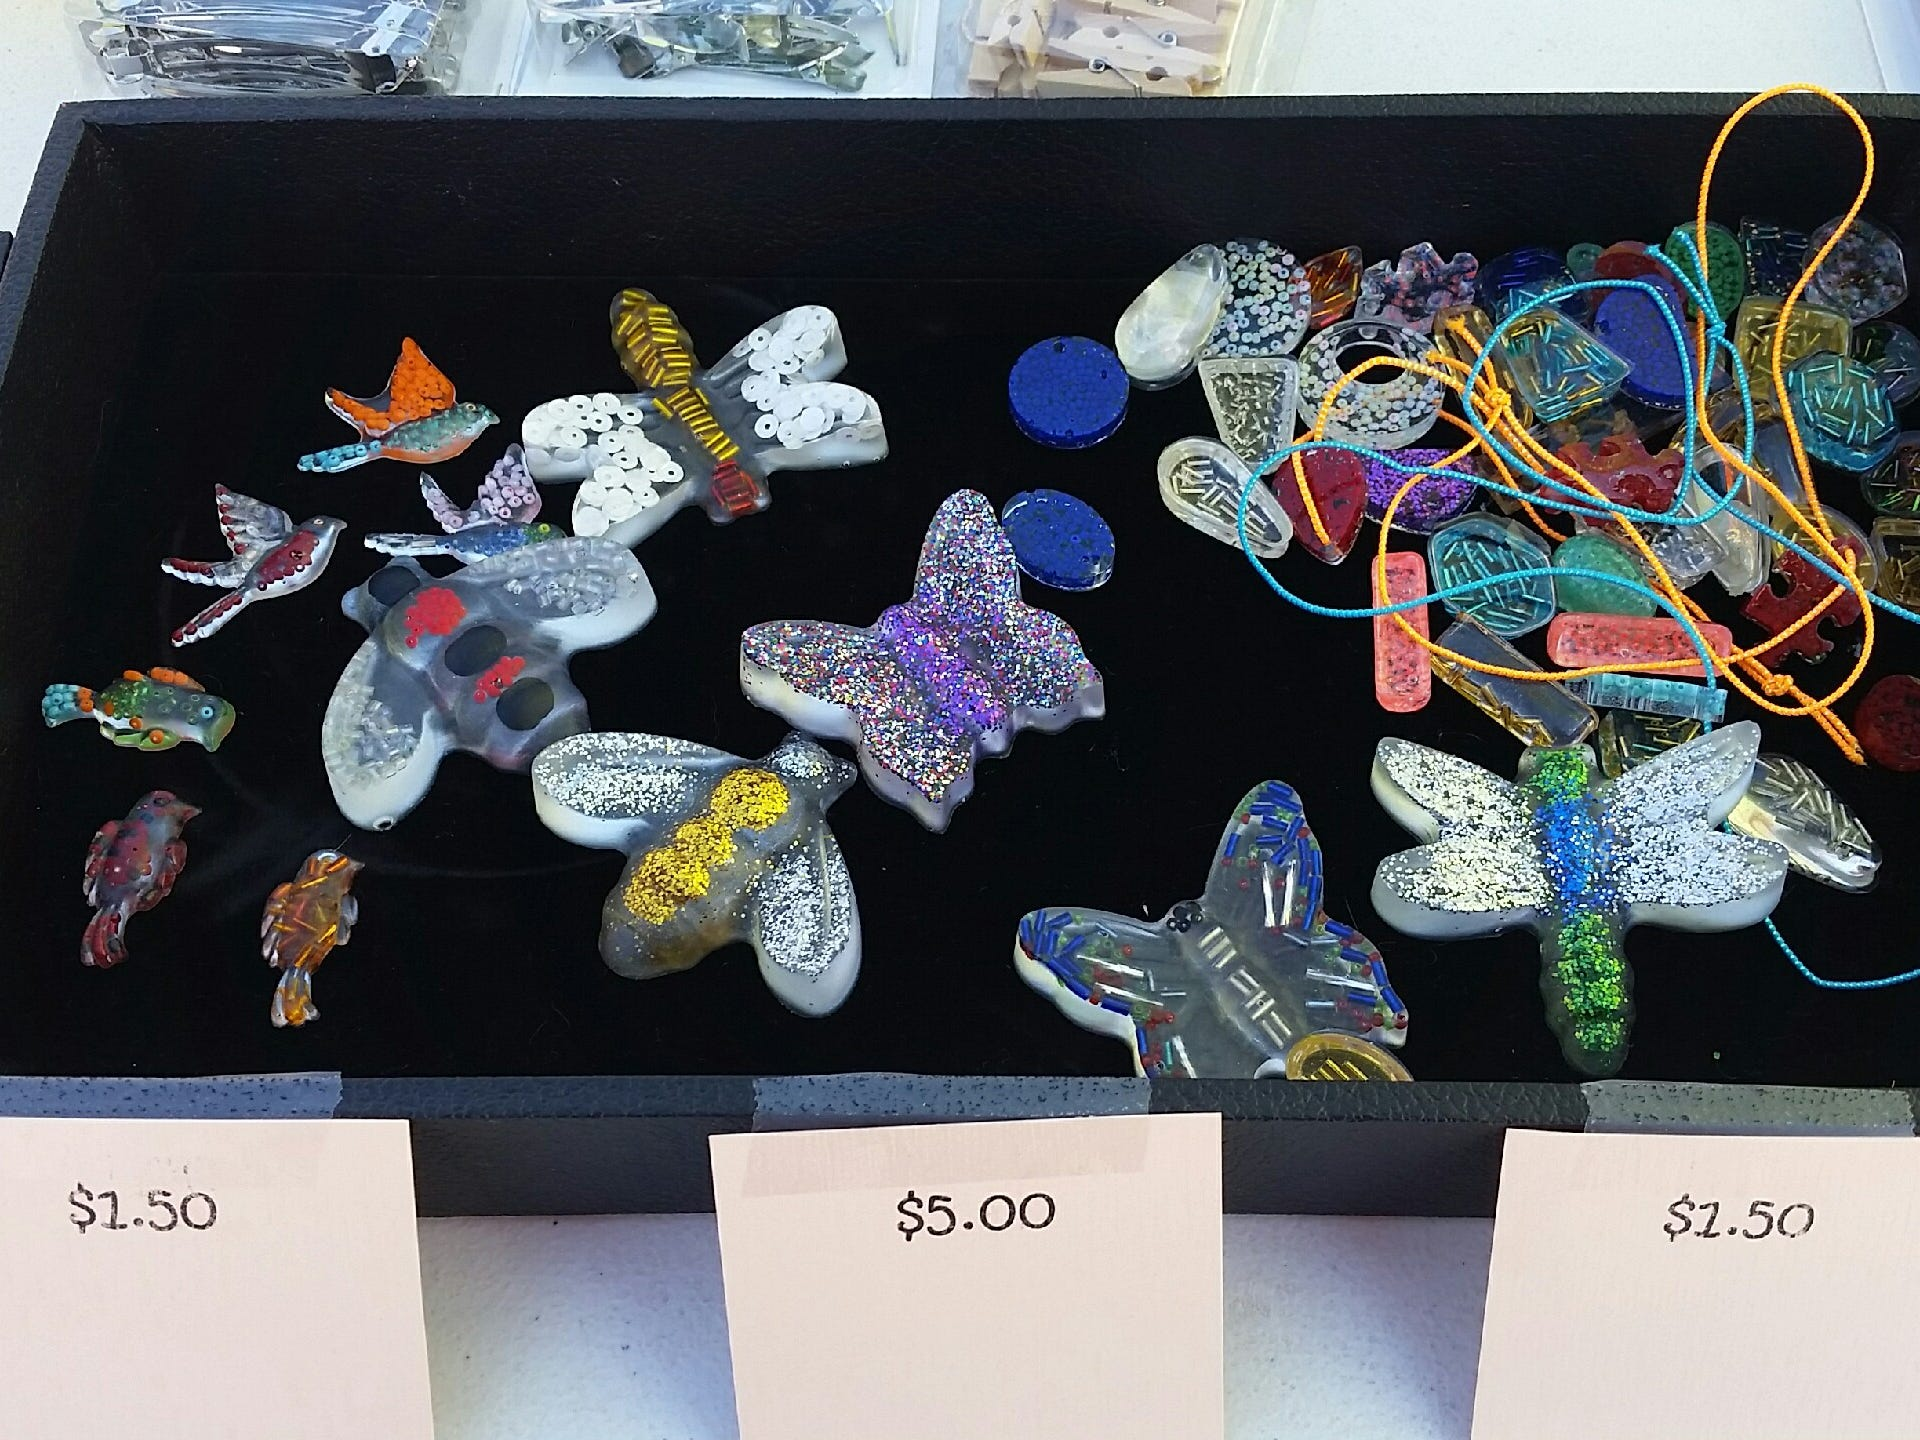 Resin jewelry and figurines created by Zachary Beasley are seen Saturday, Nov. 17, 2018 during the Cruces Kids Can Business Showcase.